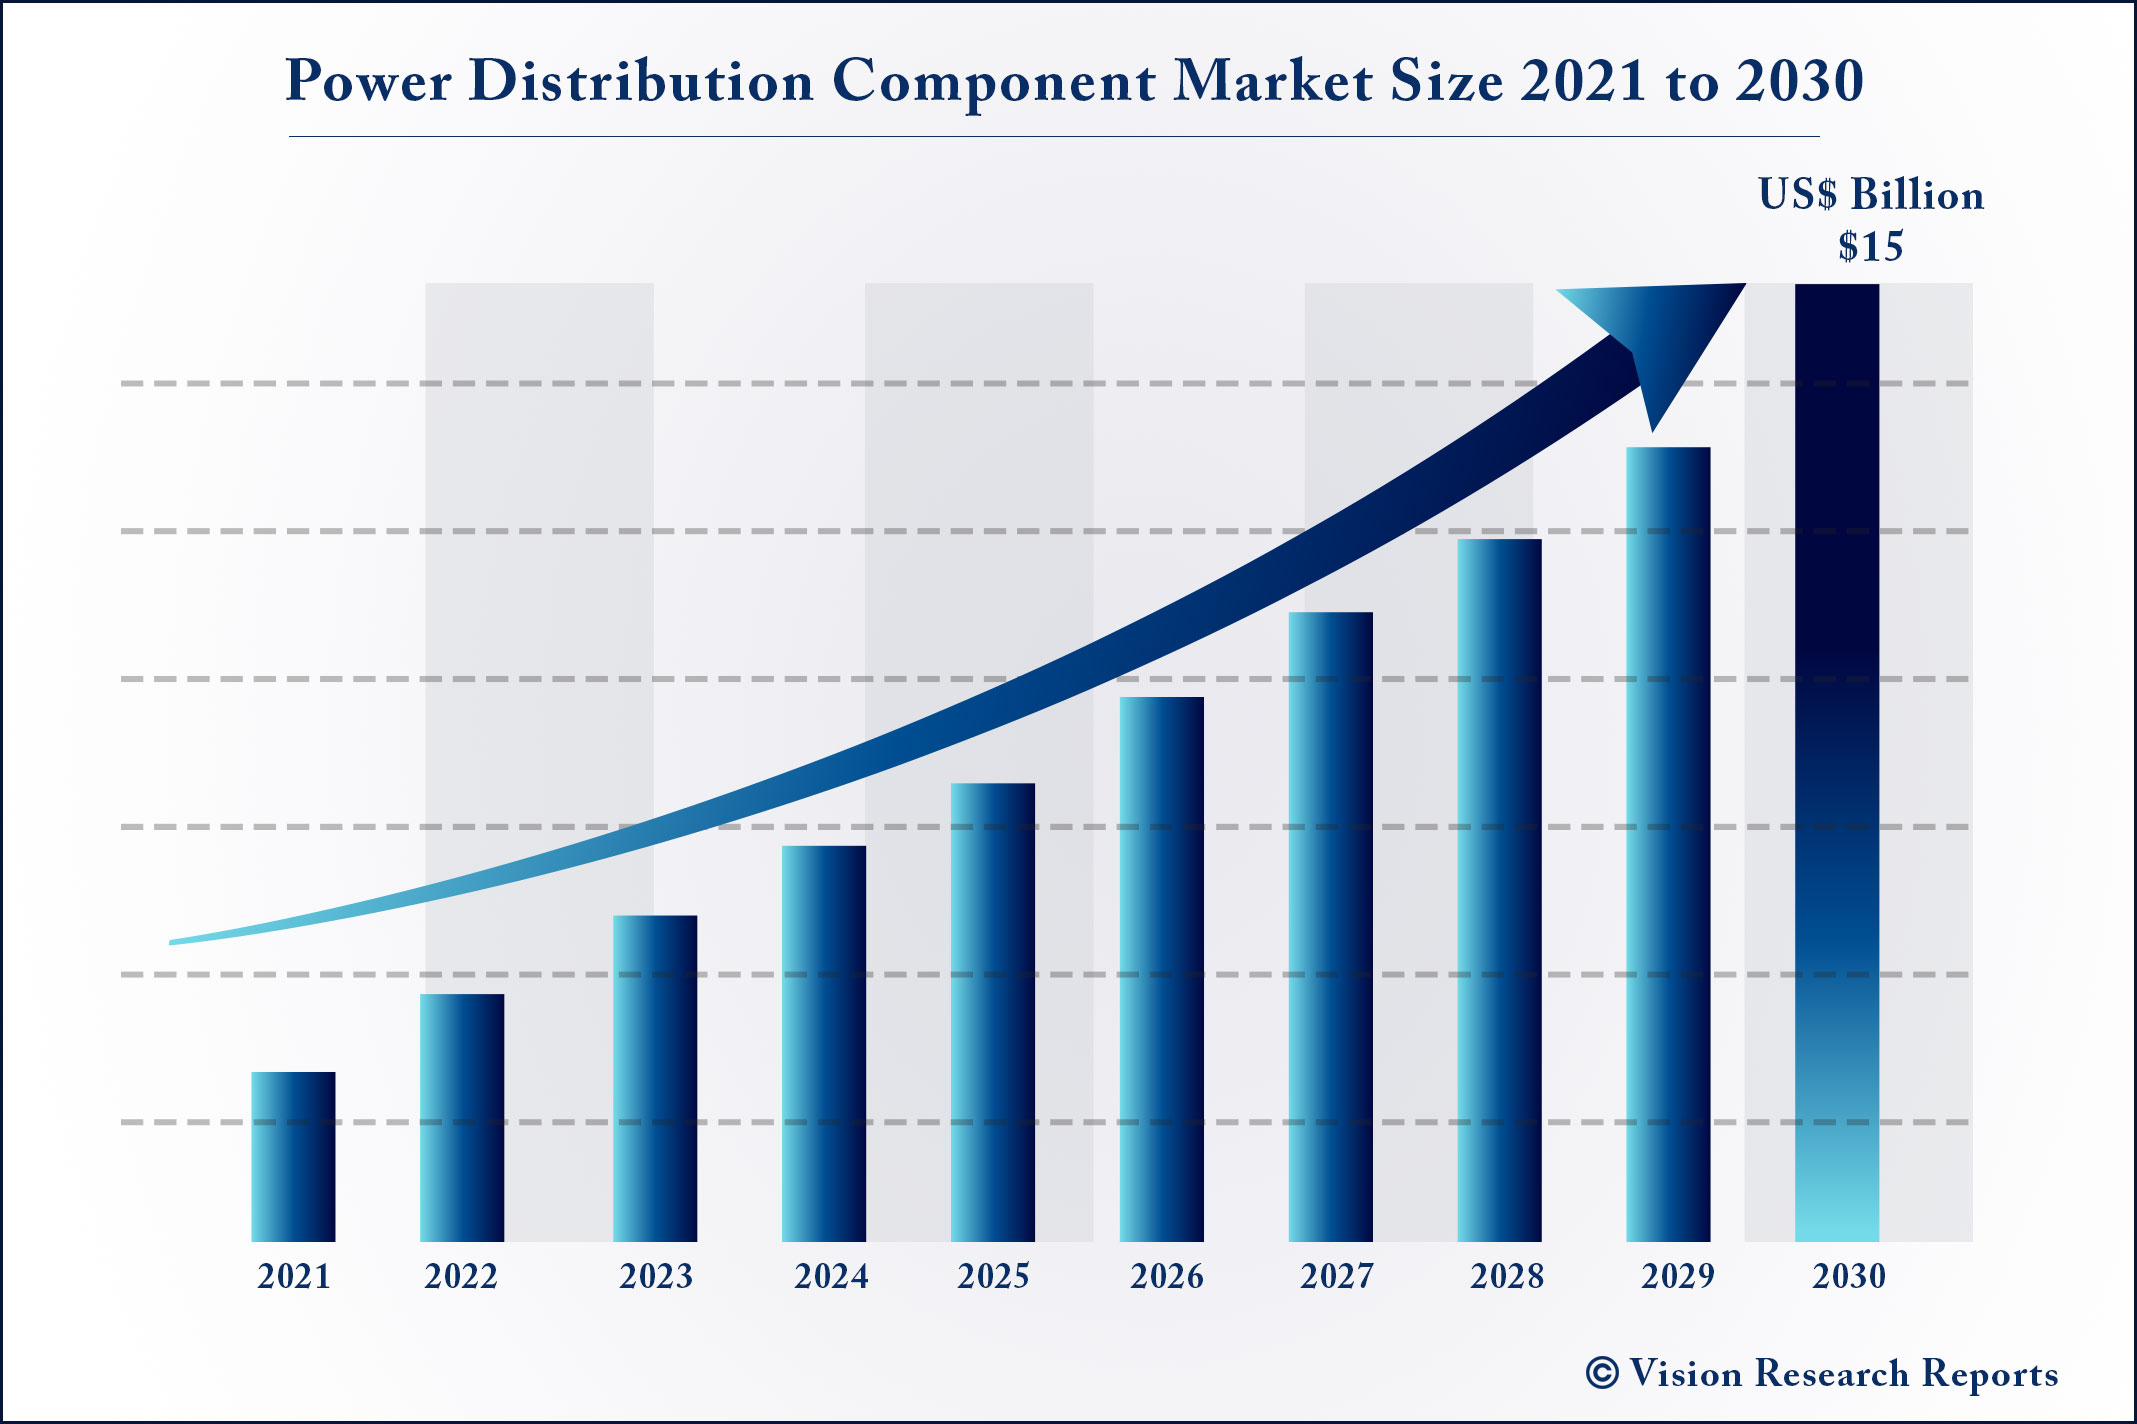 Power Distribution Component Market Size 2021 to 2030